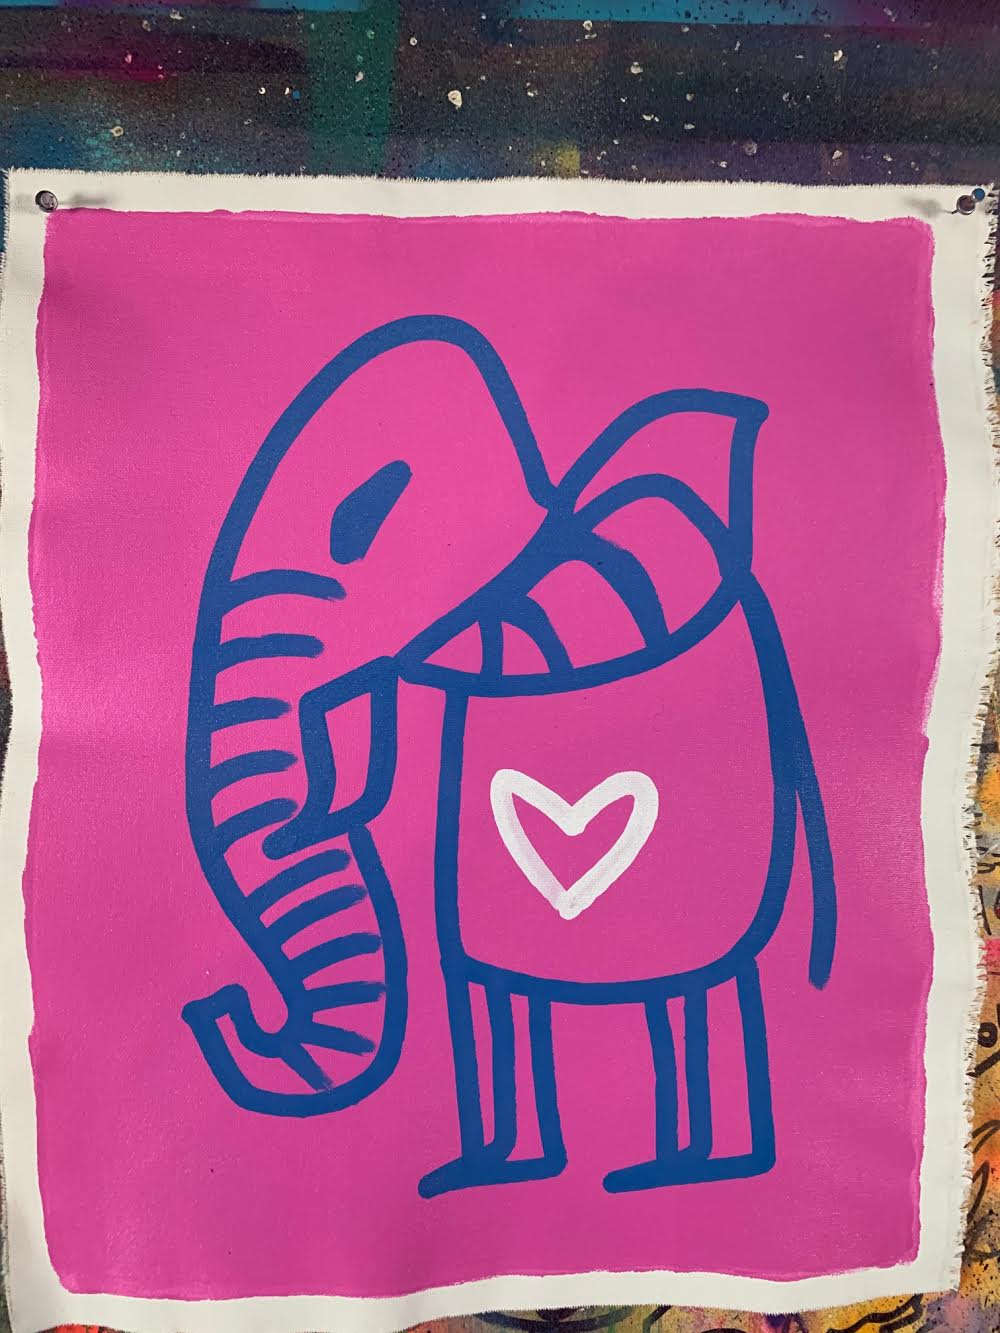 Cave Elephant | Cosmic Pink + Blue + White Heart